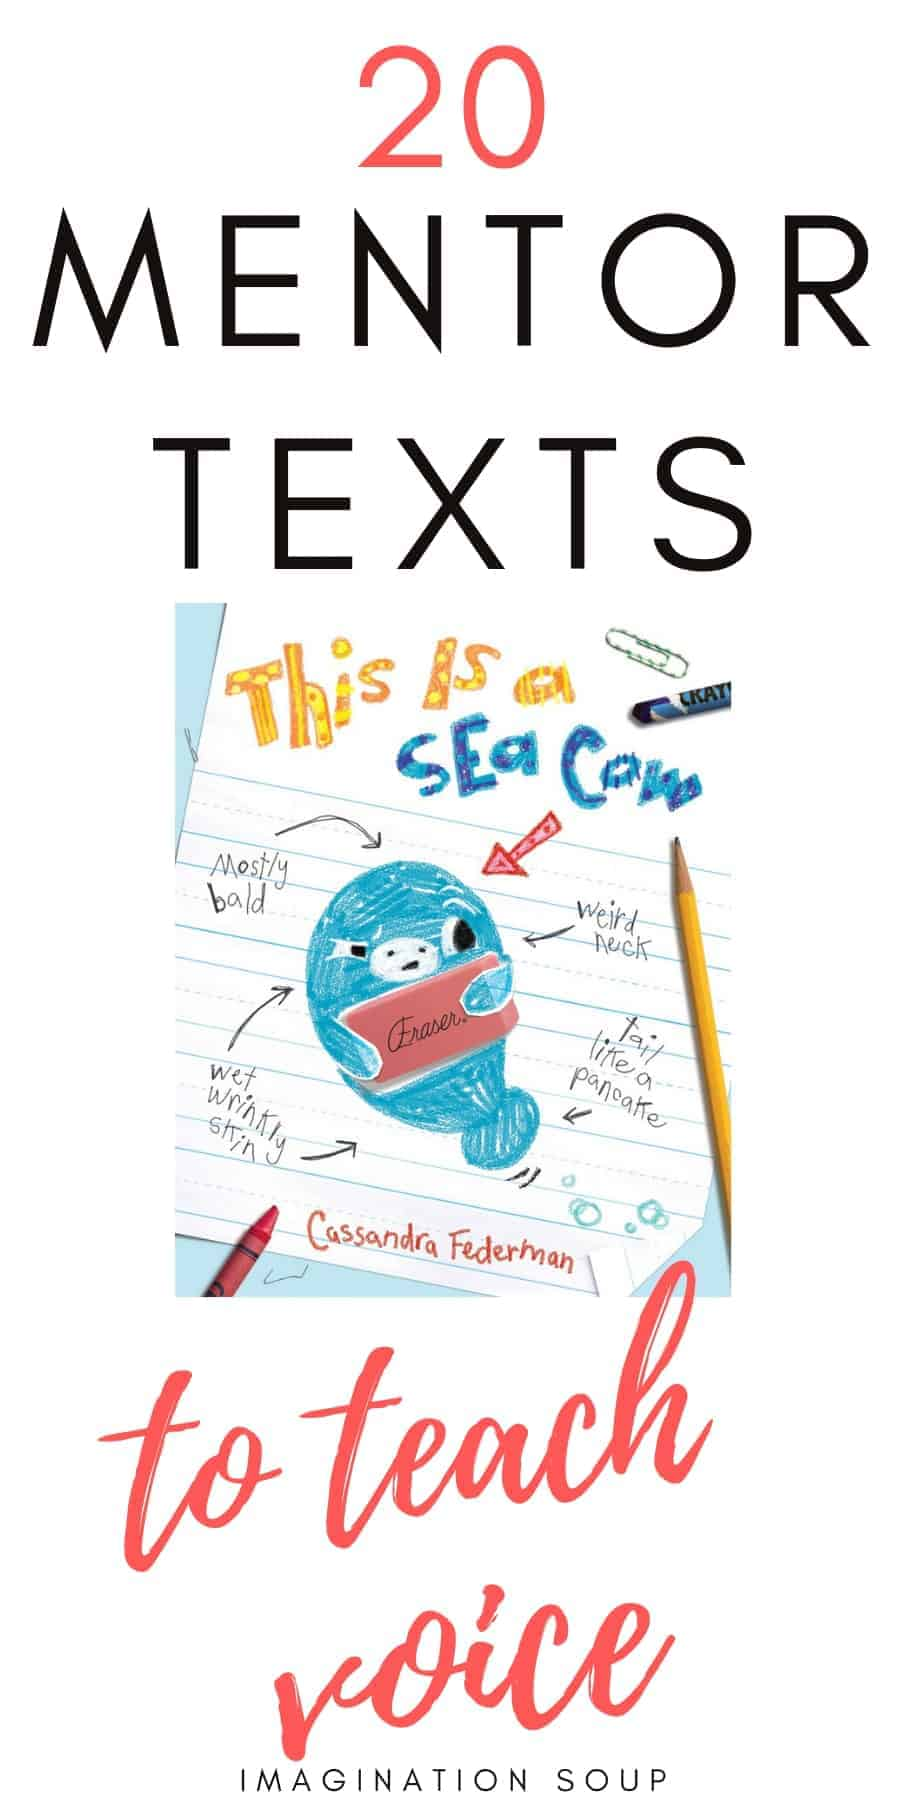 picture book and chapter book mentor texts to teach voice